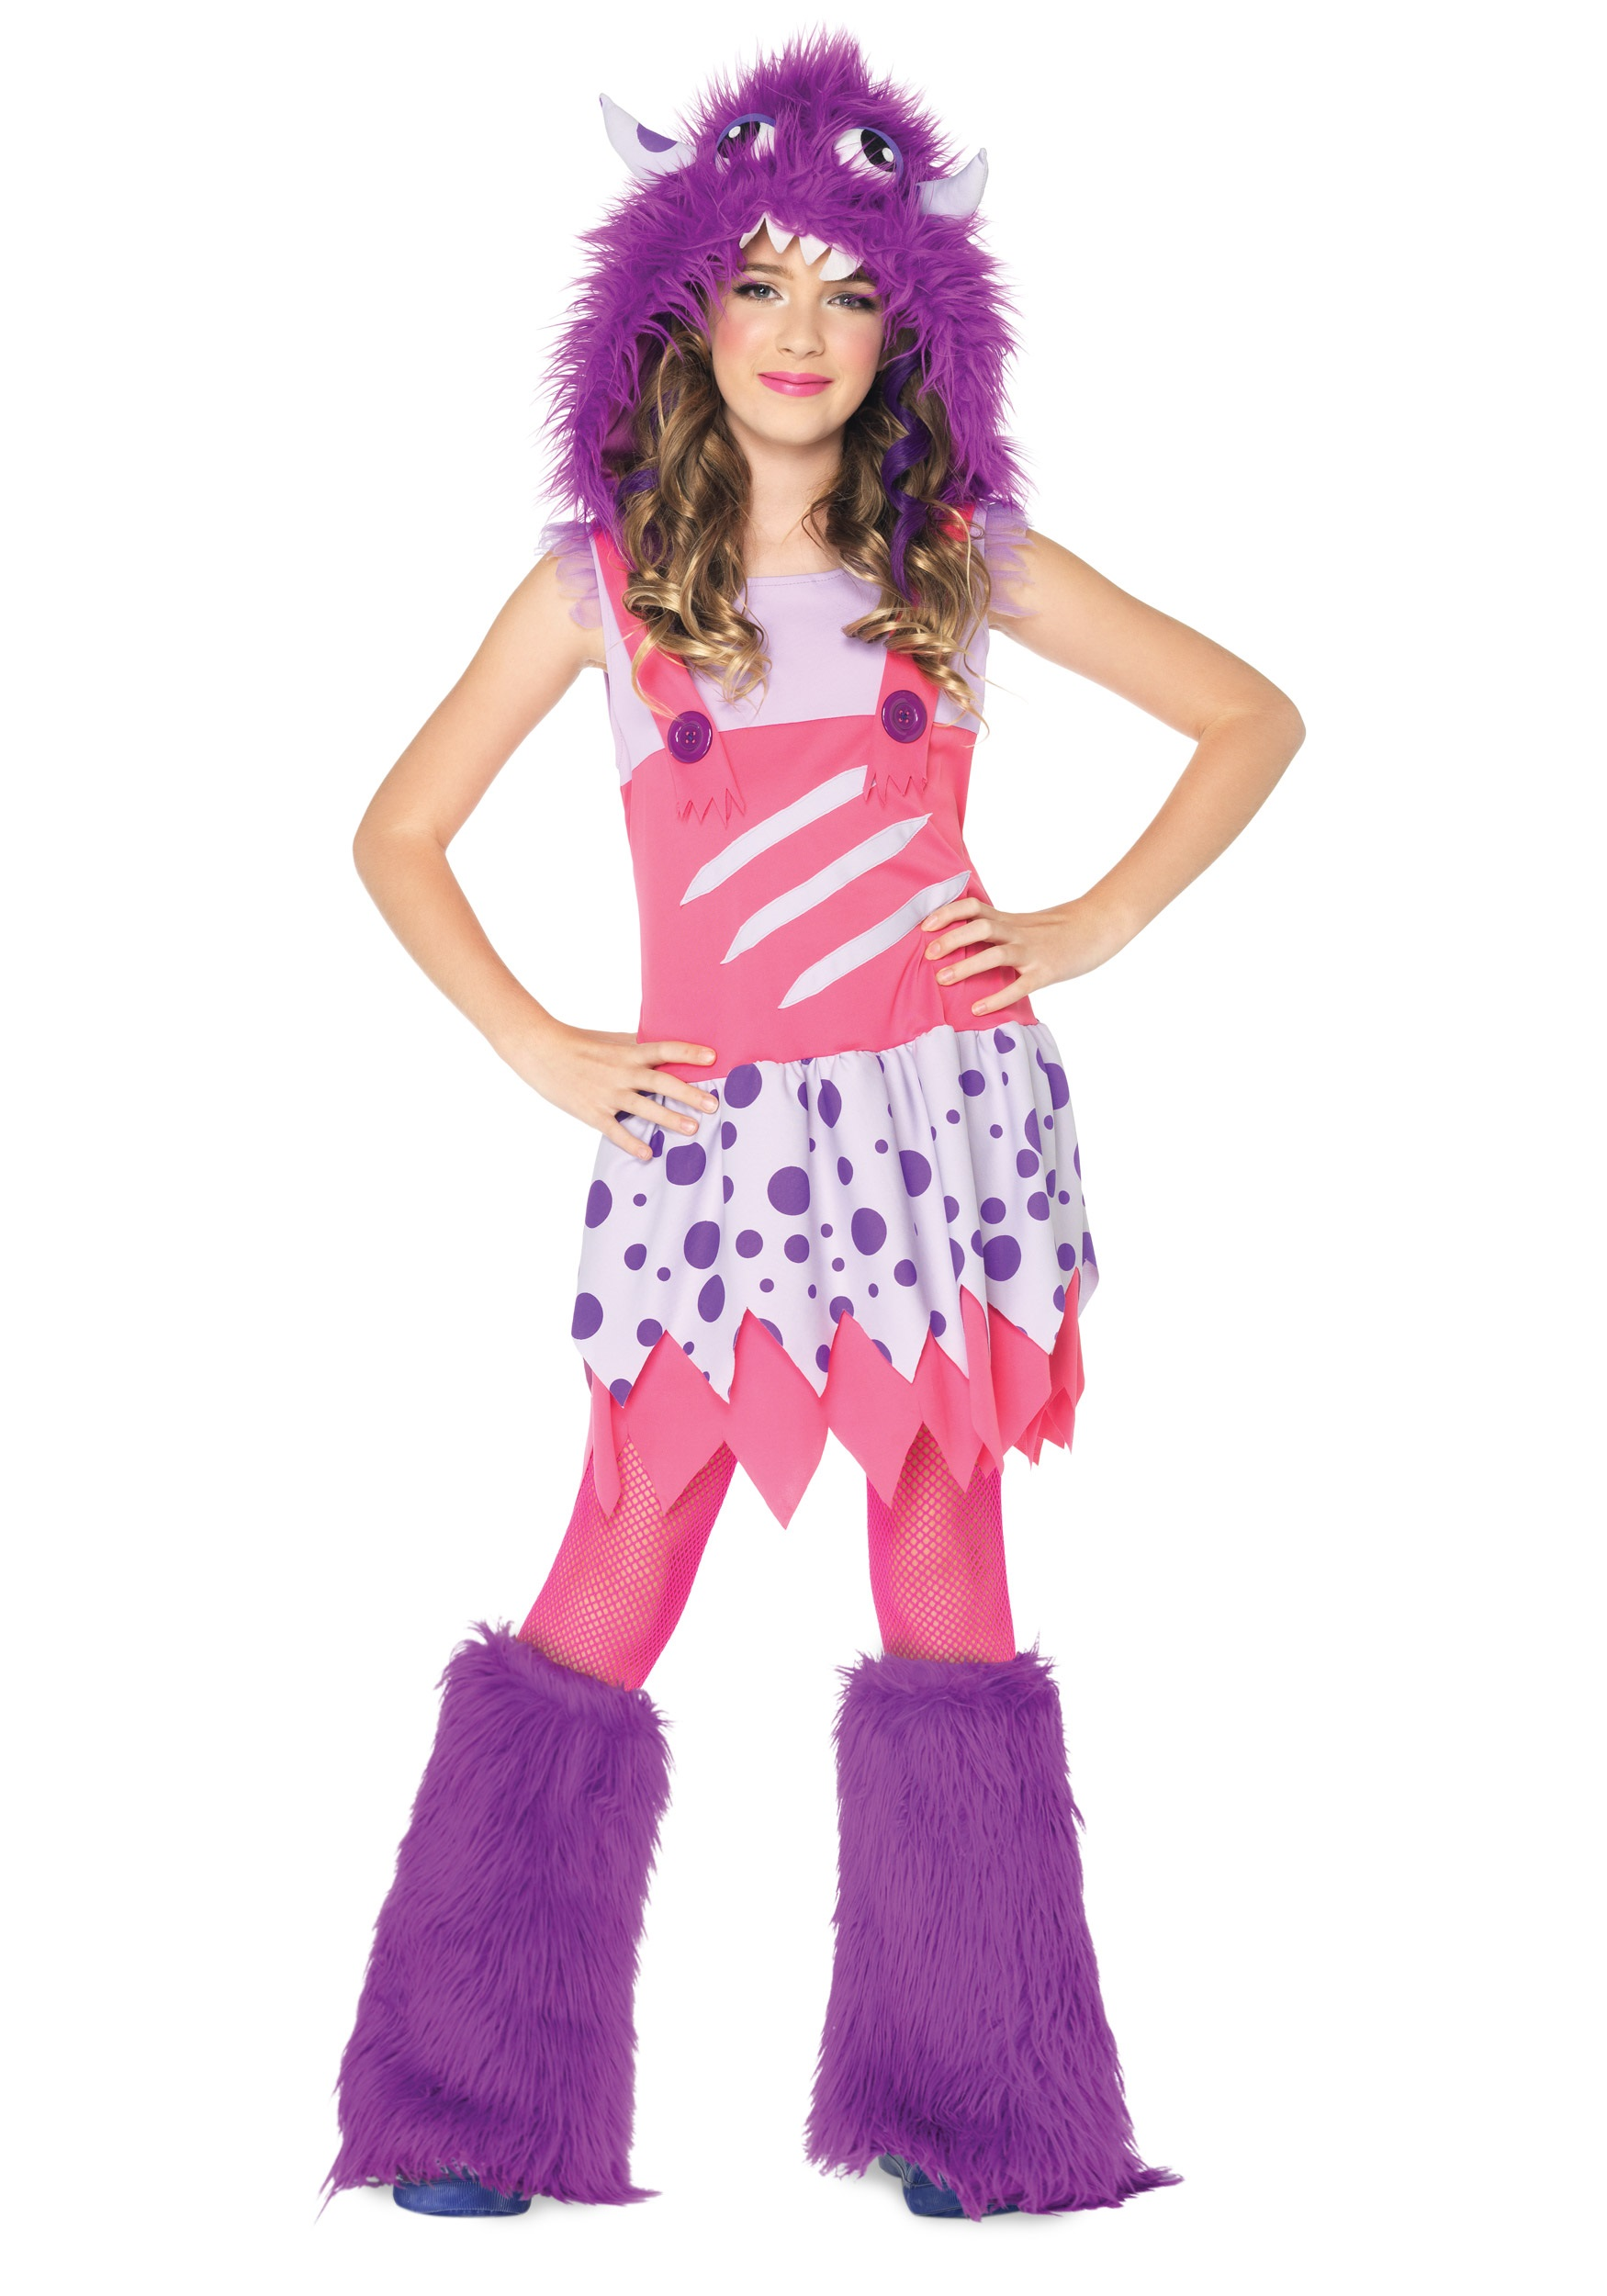 Girls Furball Monster Costume  sc 1 st  Halloween Costumes & Girls Furball Monster Costume - Halloween Costumes